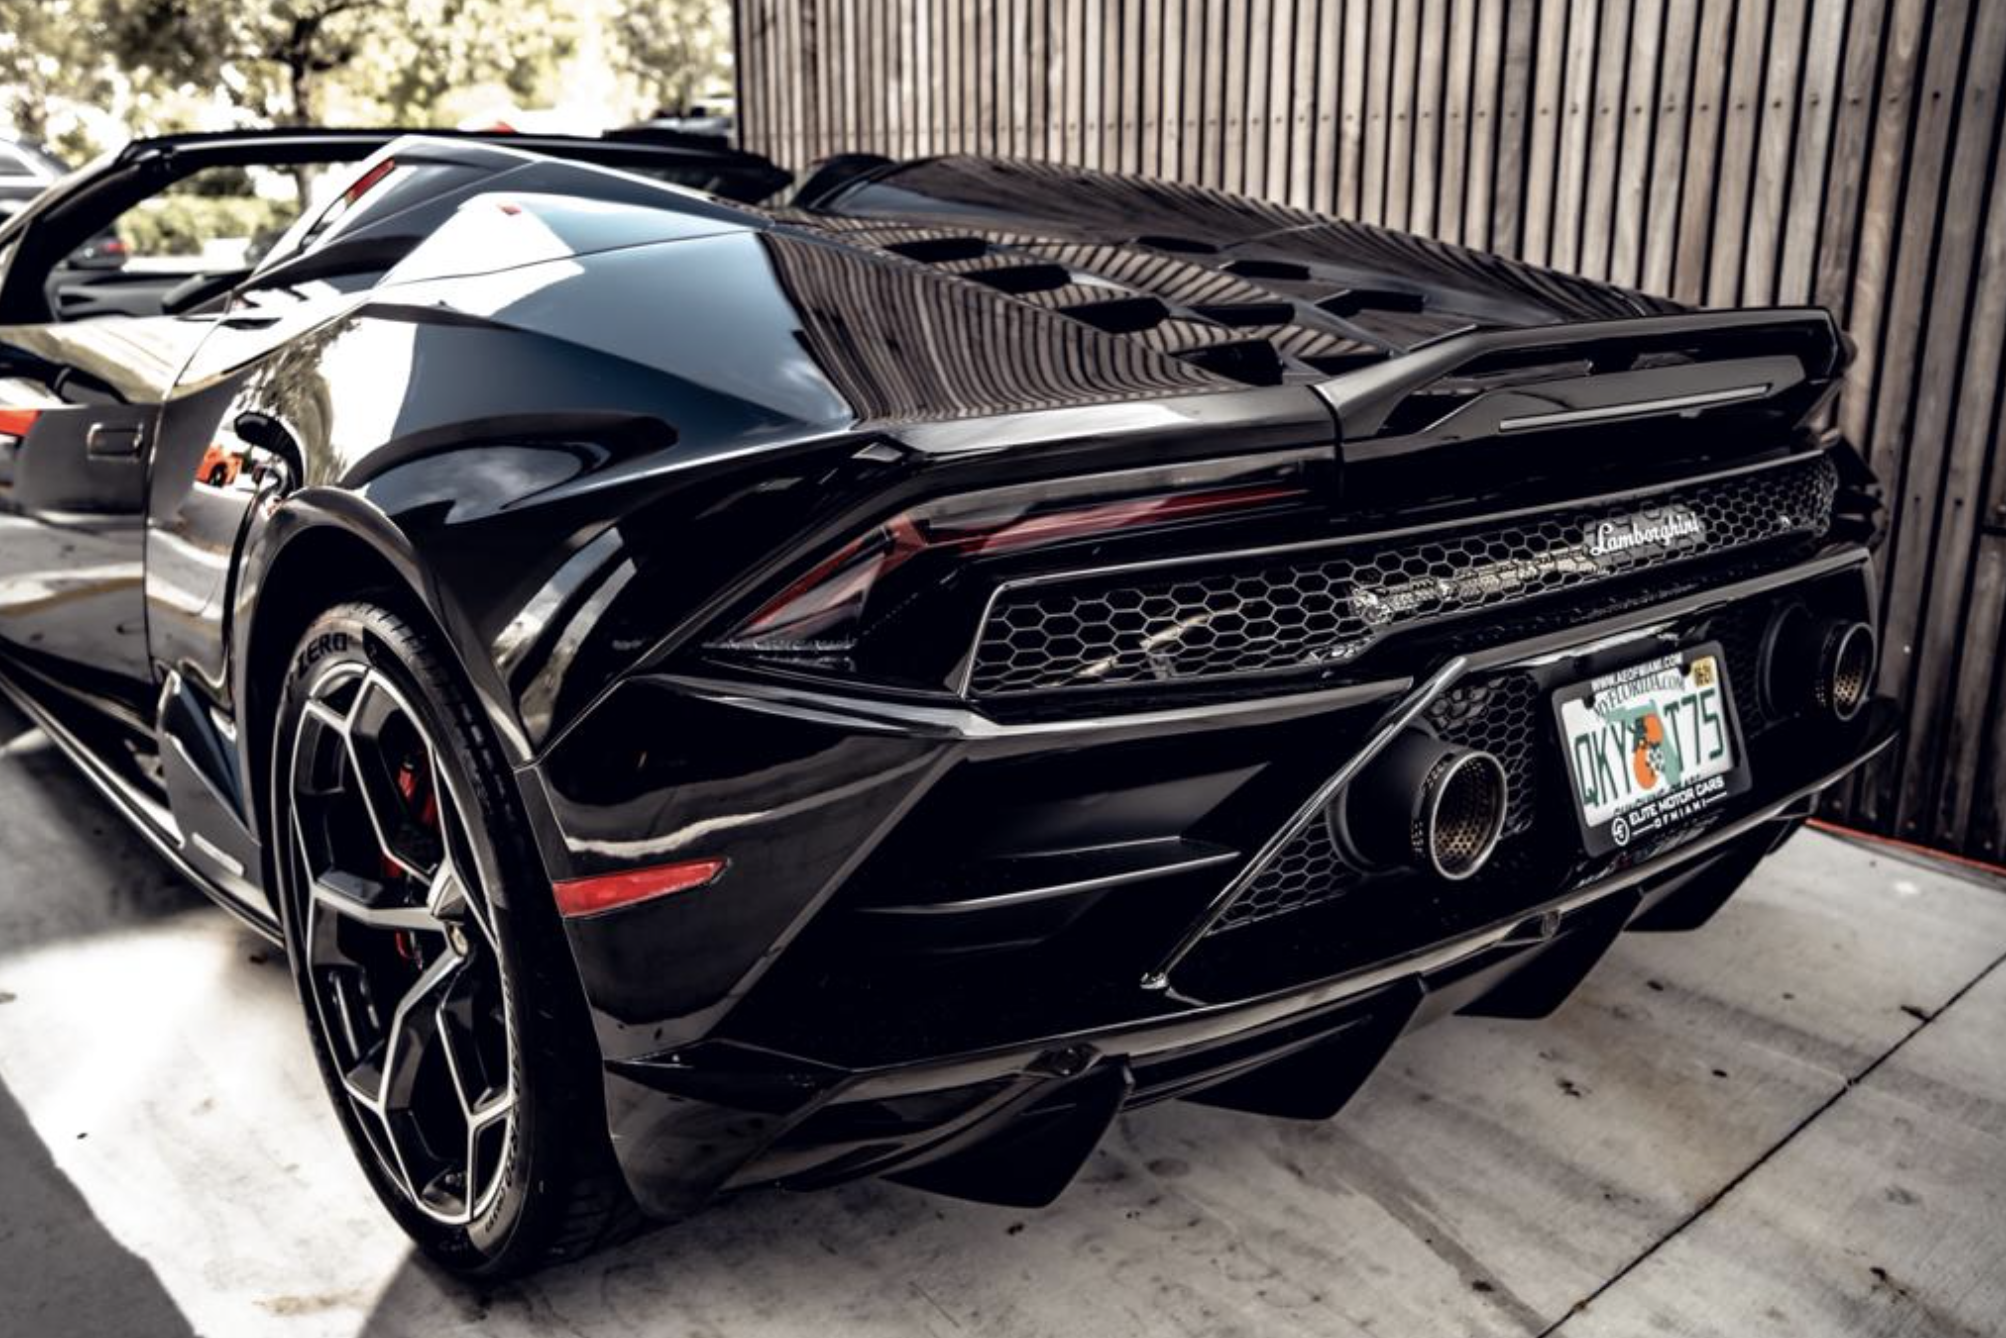 Image #5 of our  LAMBORGHINI HURACAN EVO SPYDER BLACK    In Miami Fort Lauderdale Palm Beach South Florida